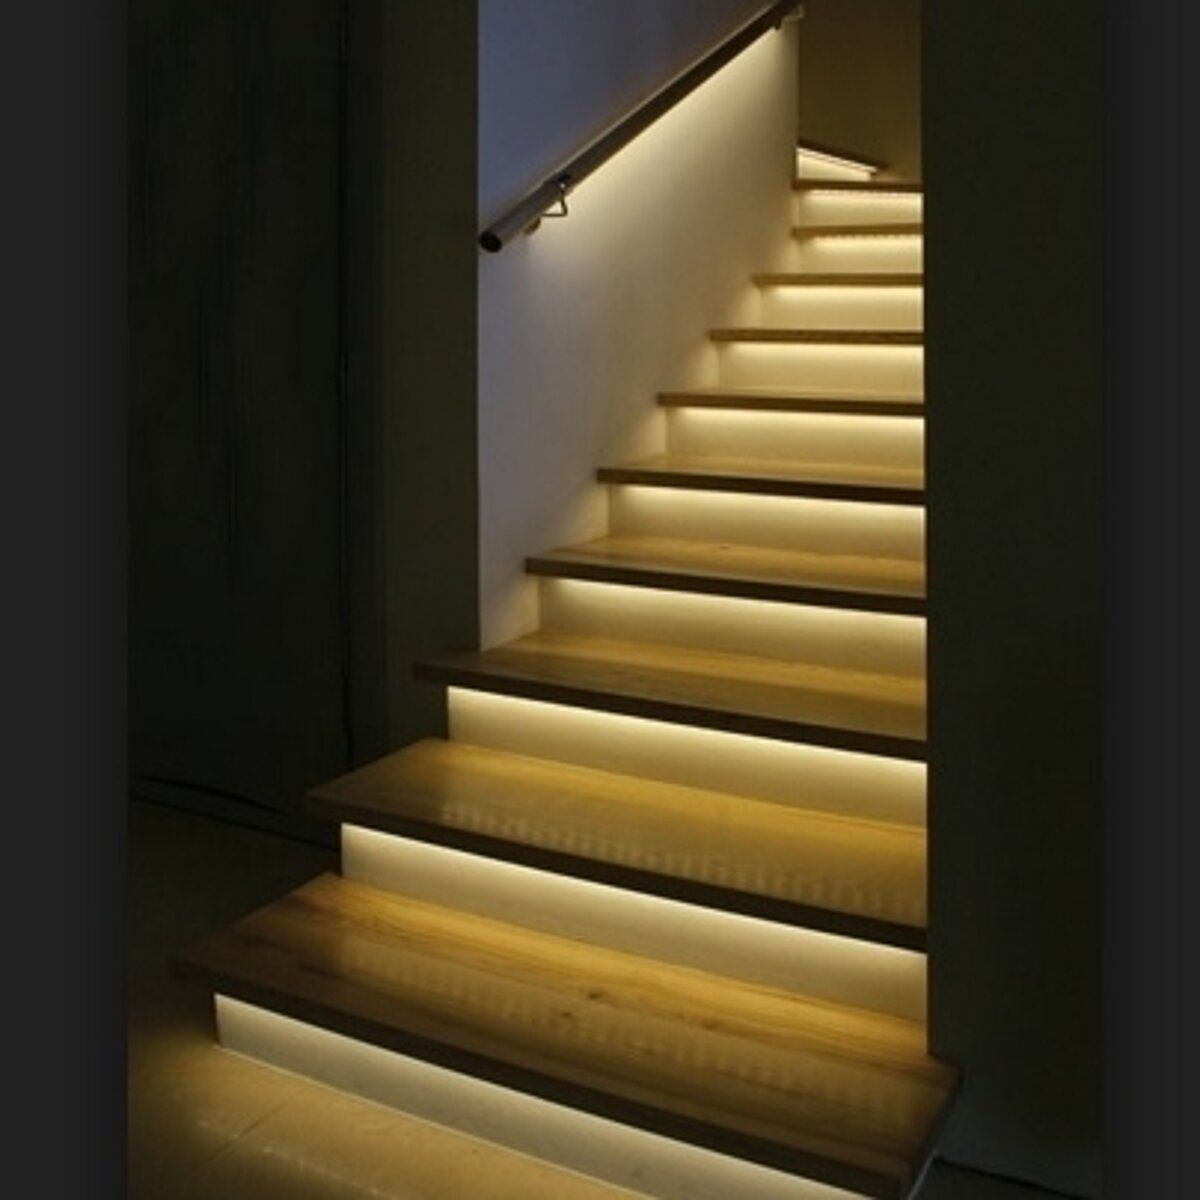 21 Staircase Lighting Design Ideas Pictures: Led Stair Lights, Staircase Lighting